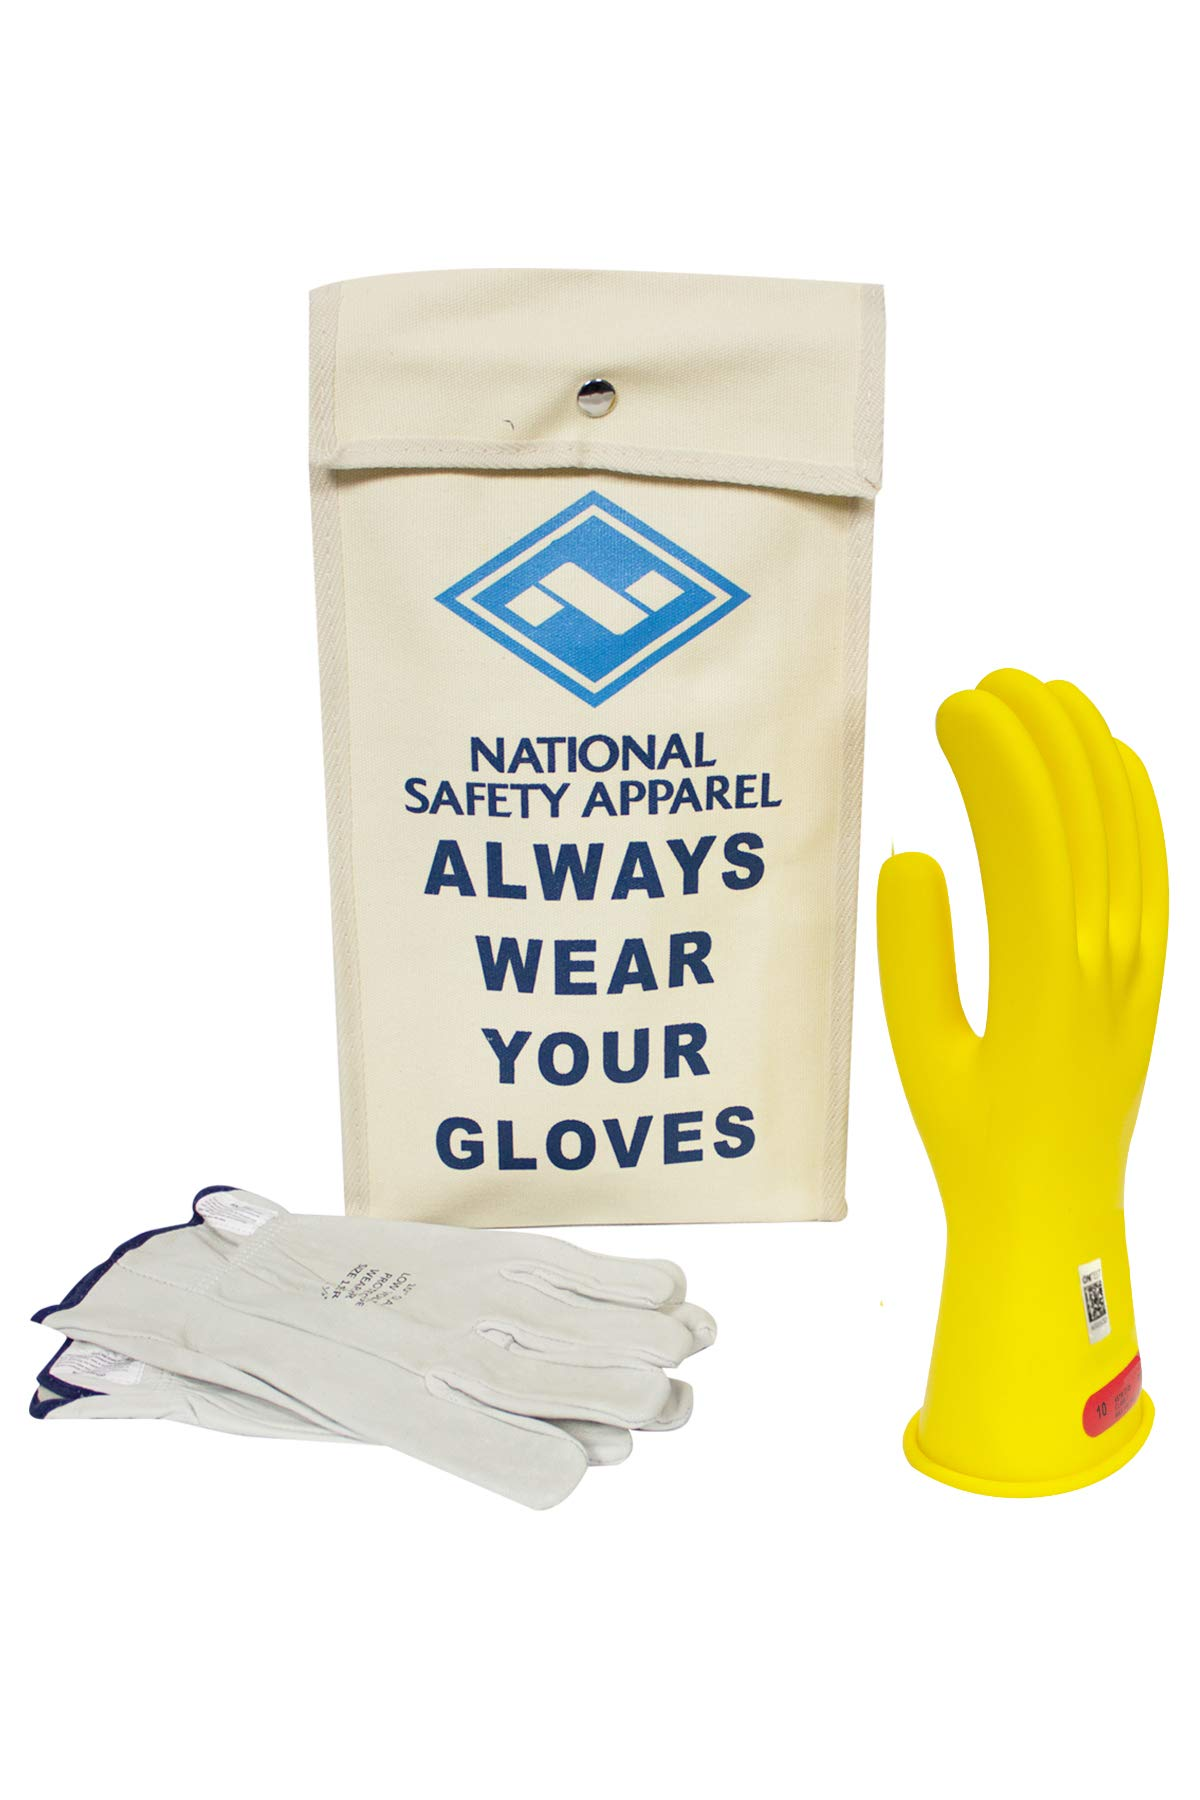 National Safety Apparel Class 0 Yellow Rubber Voltage Insulating Glove Kit with Leather Protectors, Max. Use Voltage 1,000V AC/ 1,500V DC (KITGC011Y)